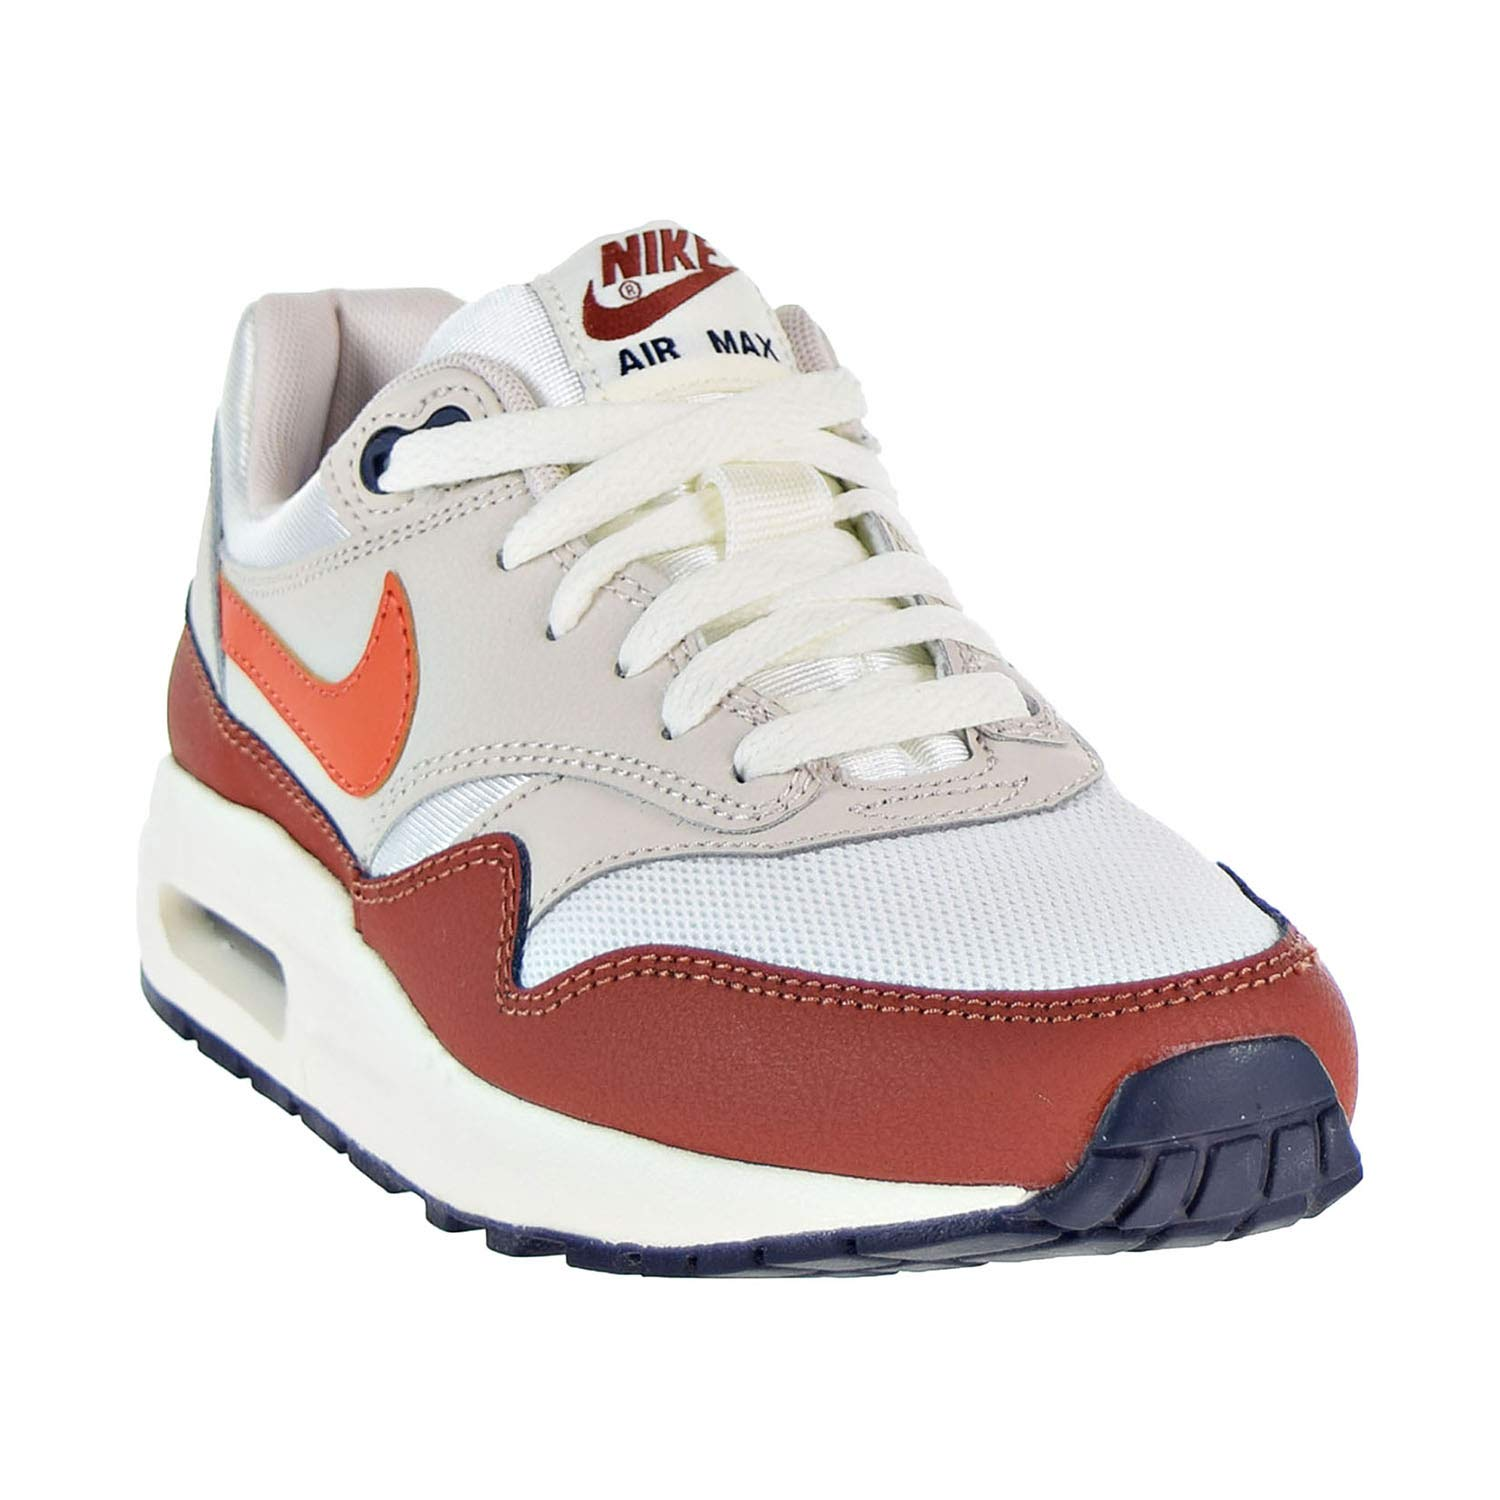 Nike Air Max 1 Boys Shoes SailVintage Coral Mars Stone 807602 103